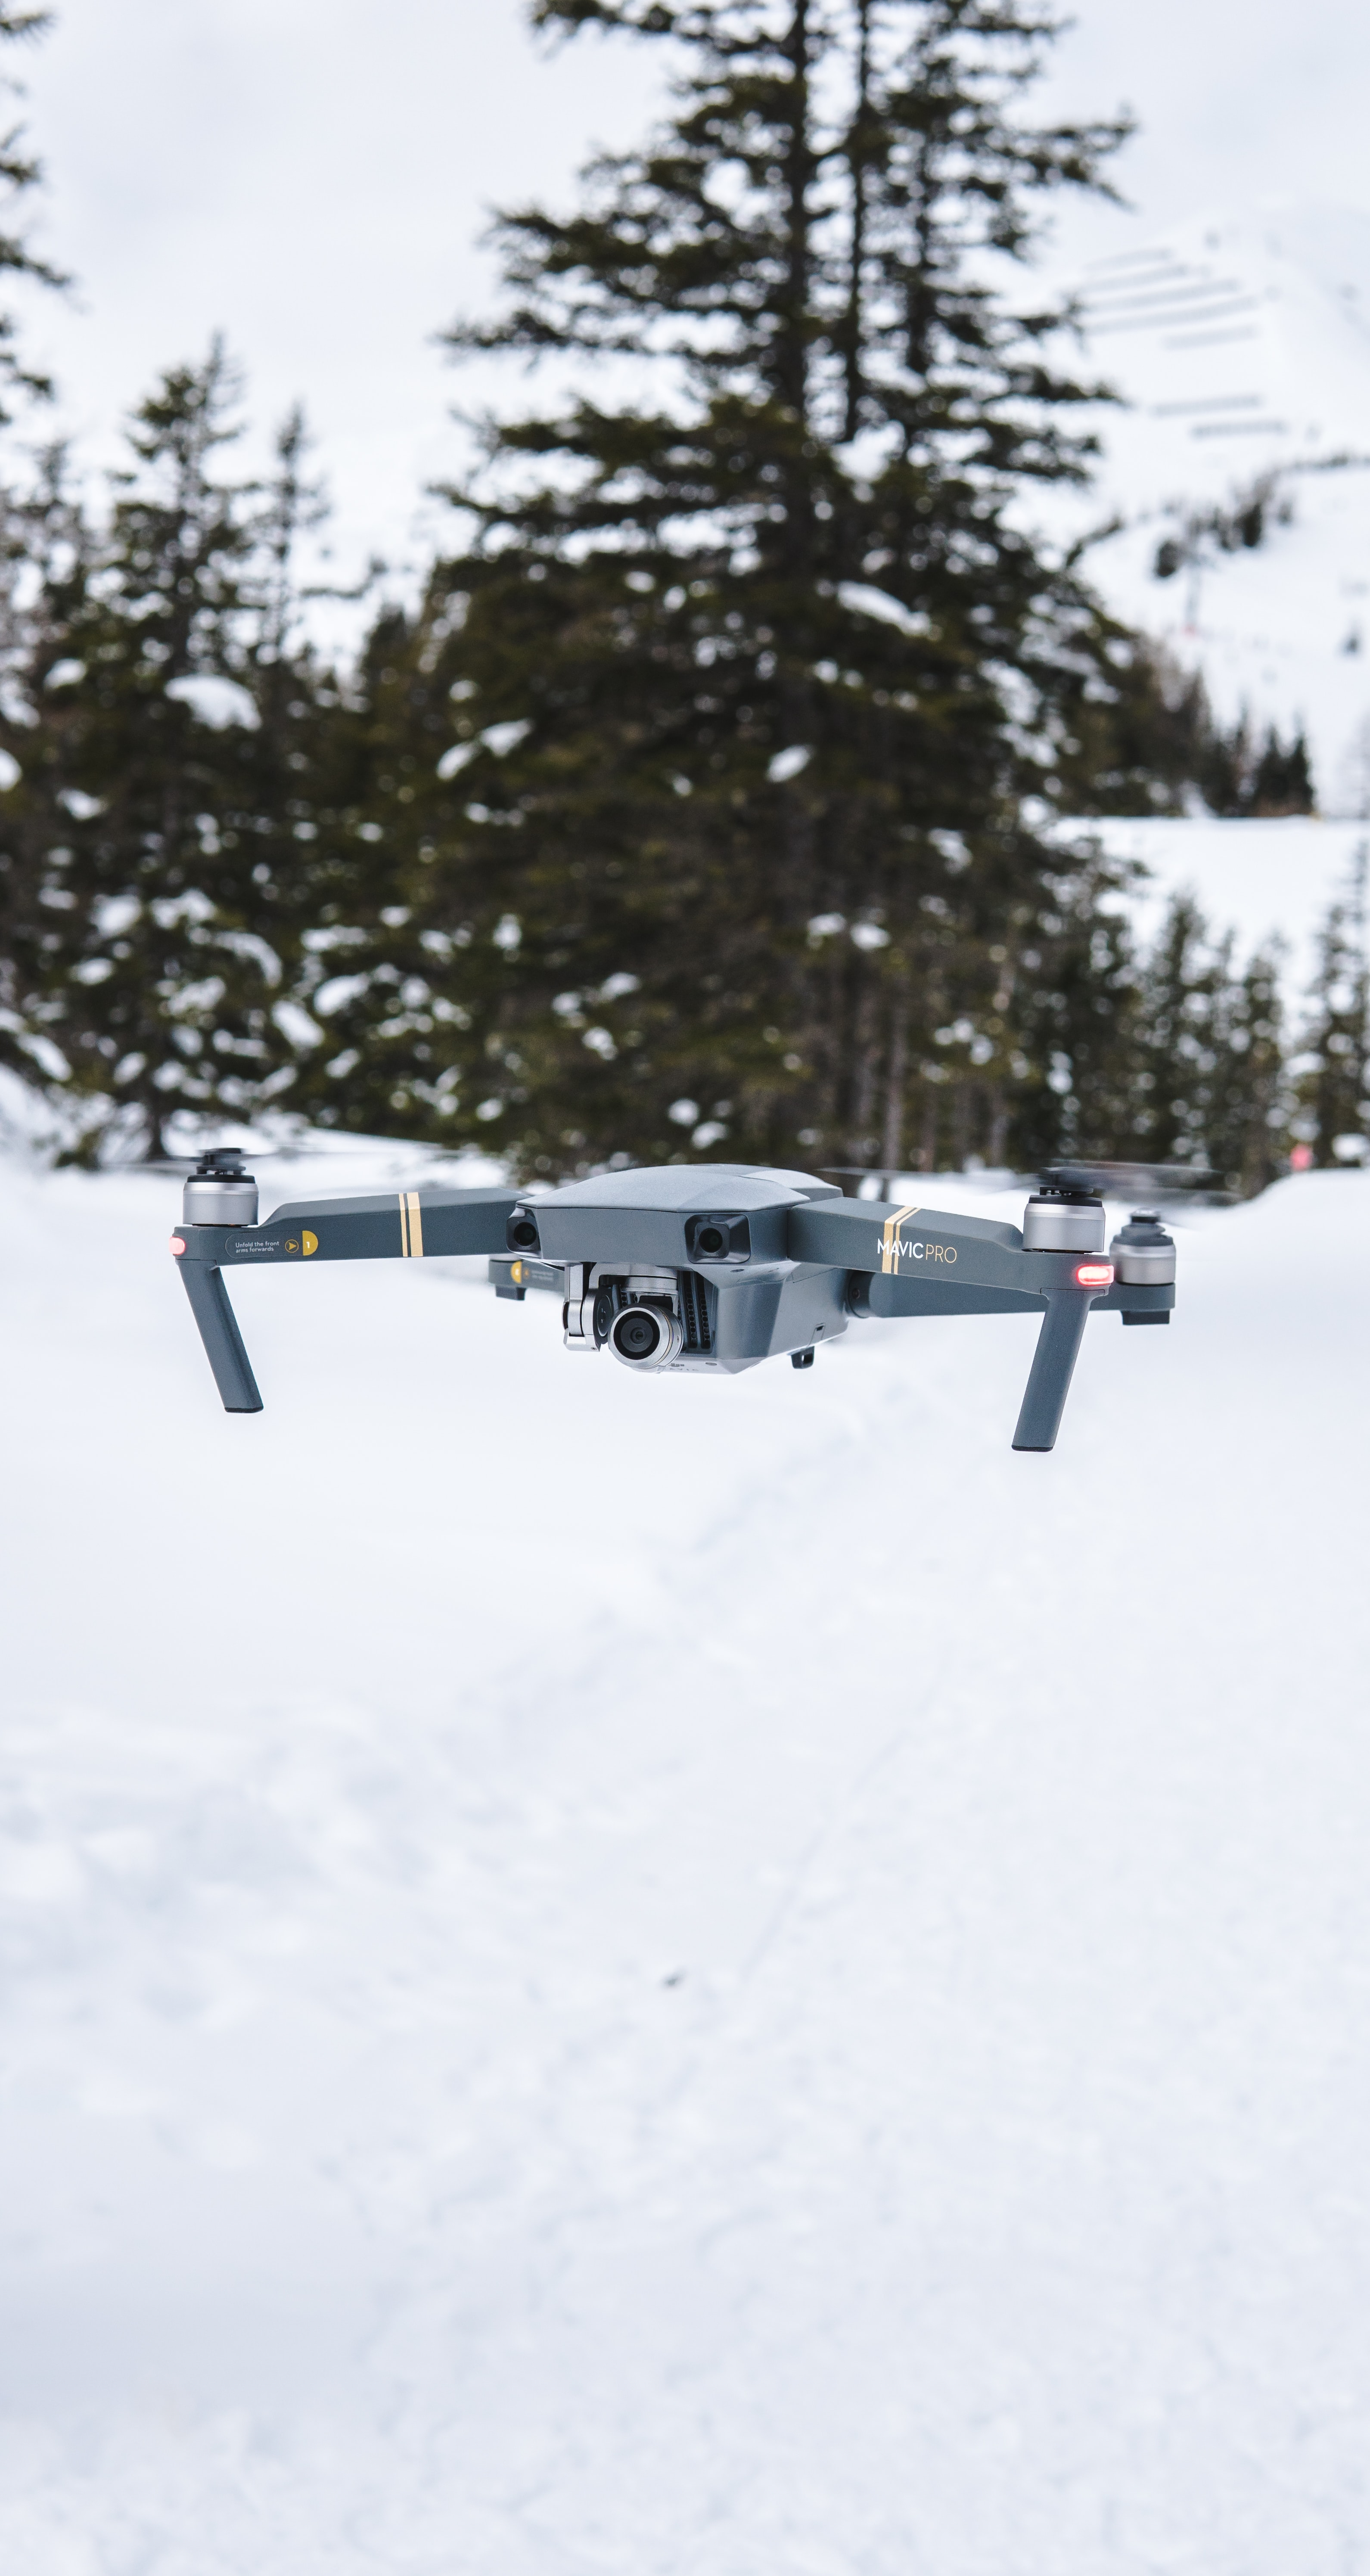 gray flying quadcopter near trees with snow